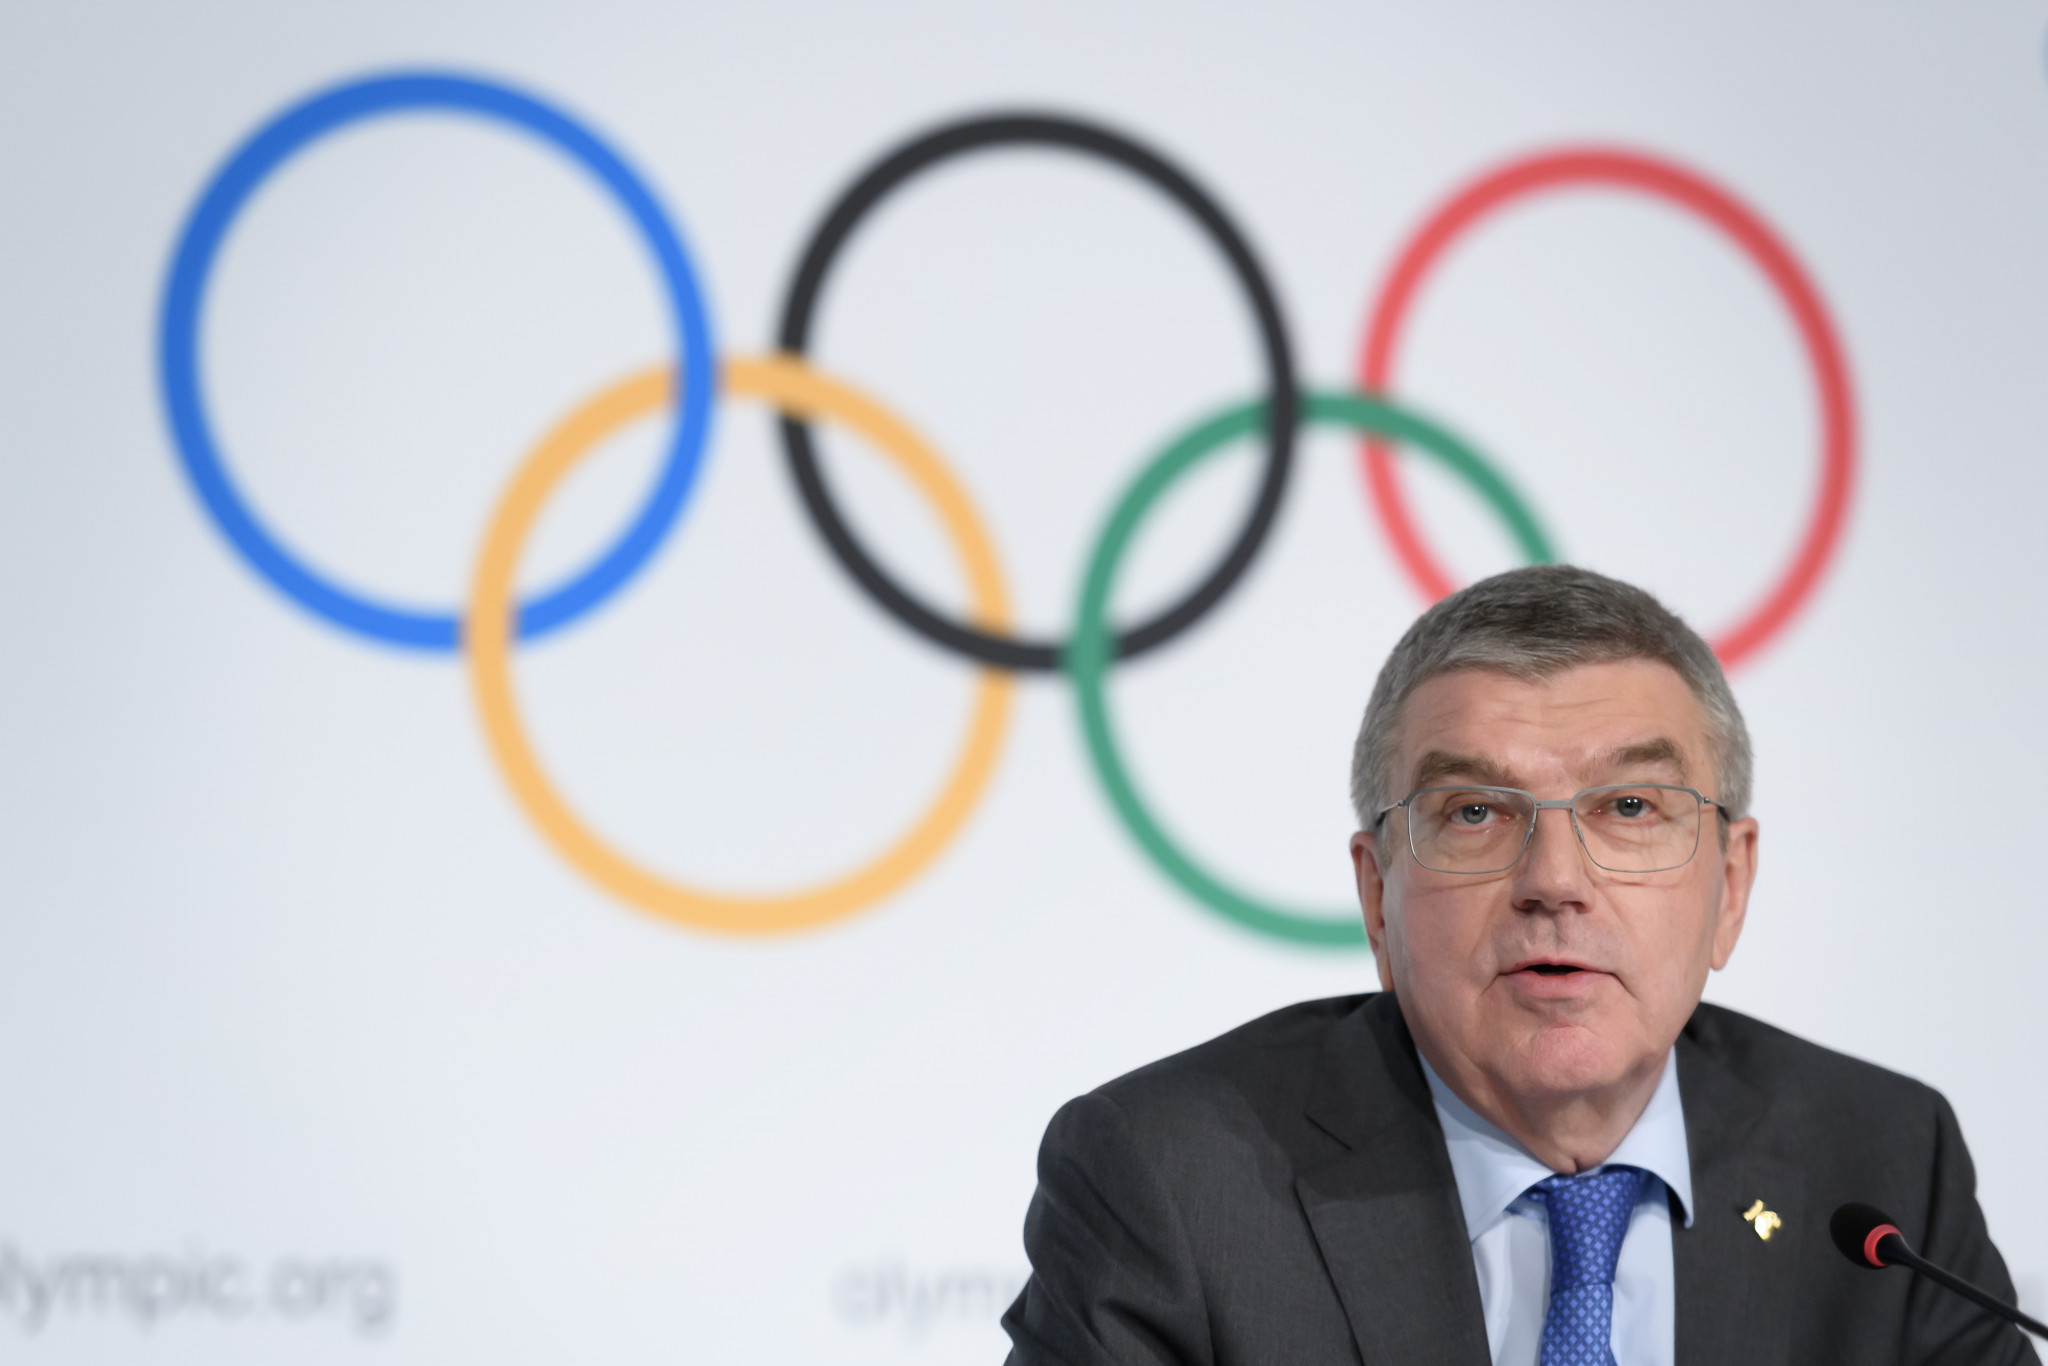 Bach to call new Japanese Prime Minister Suga to discuss Tokyo 2020